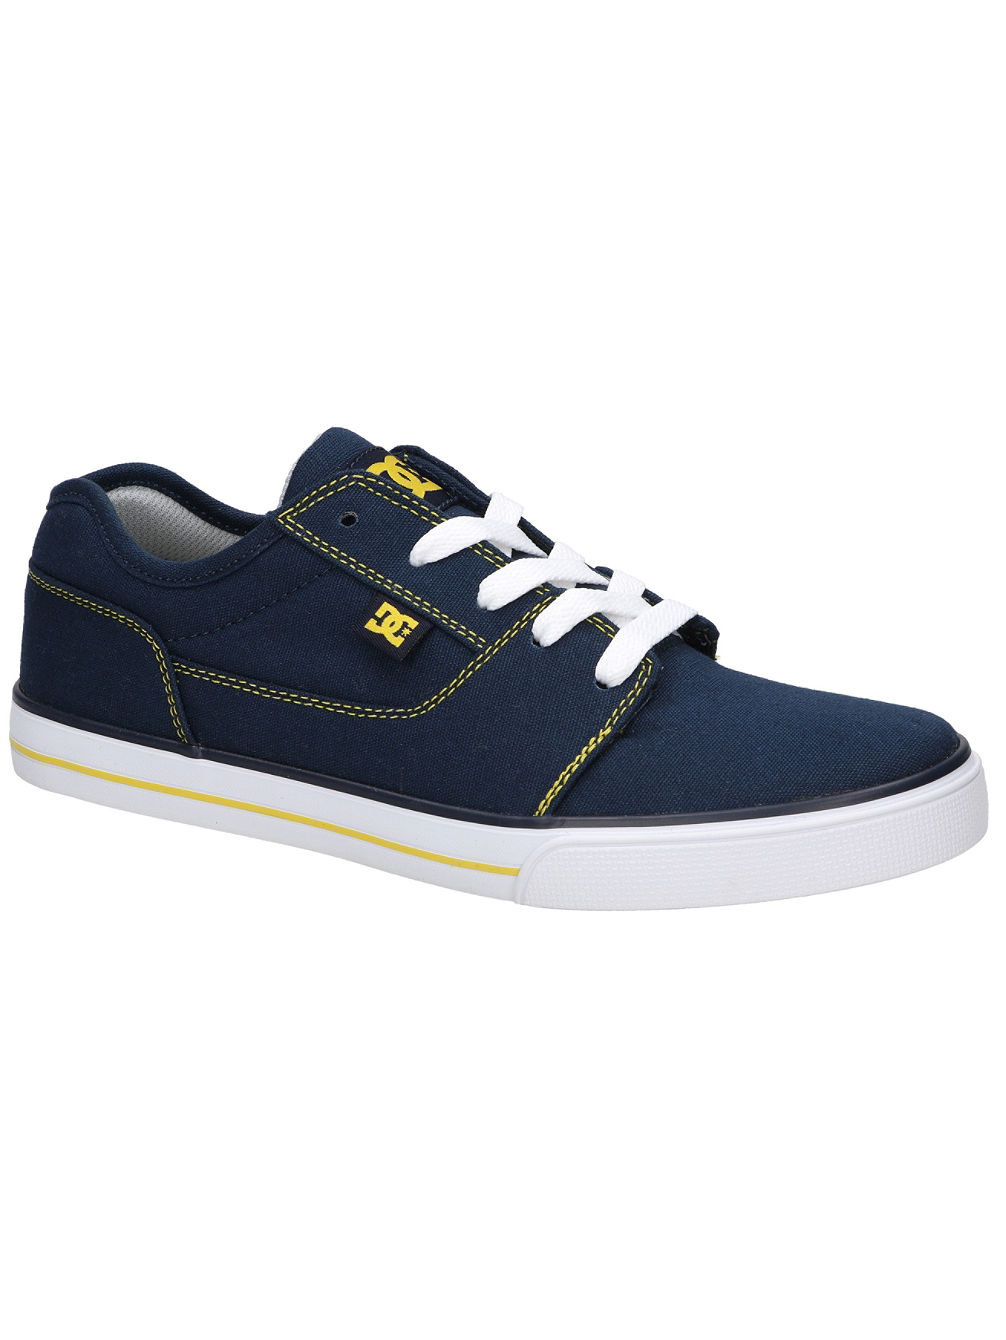 Tonik TX Sneakers Boys